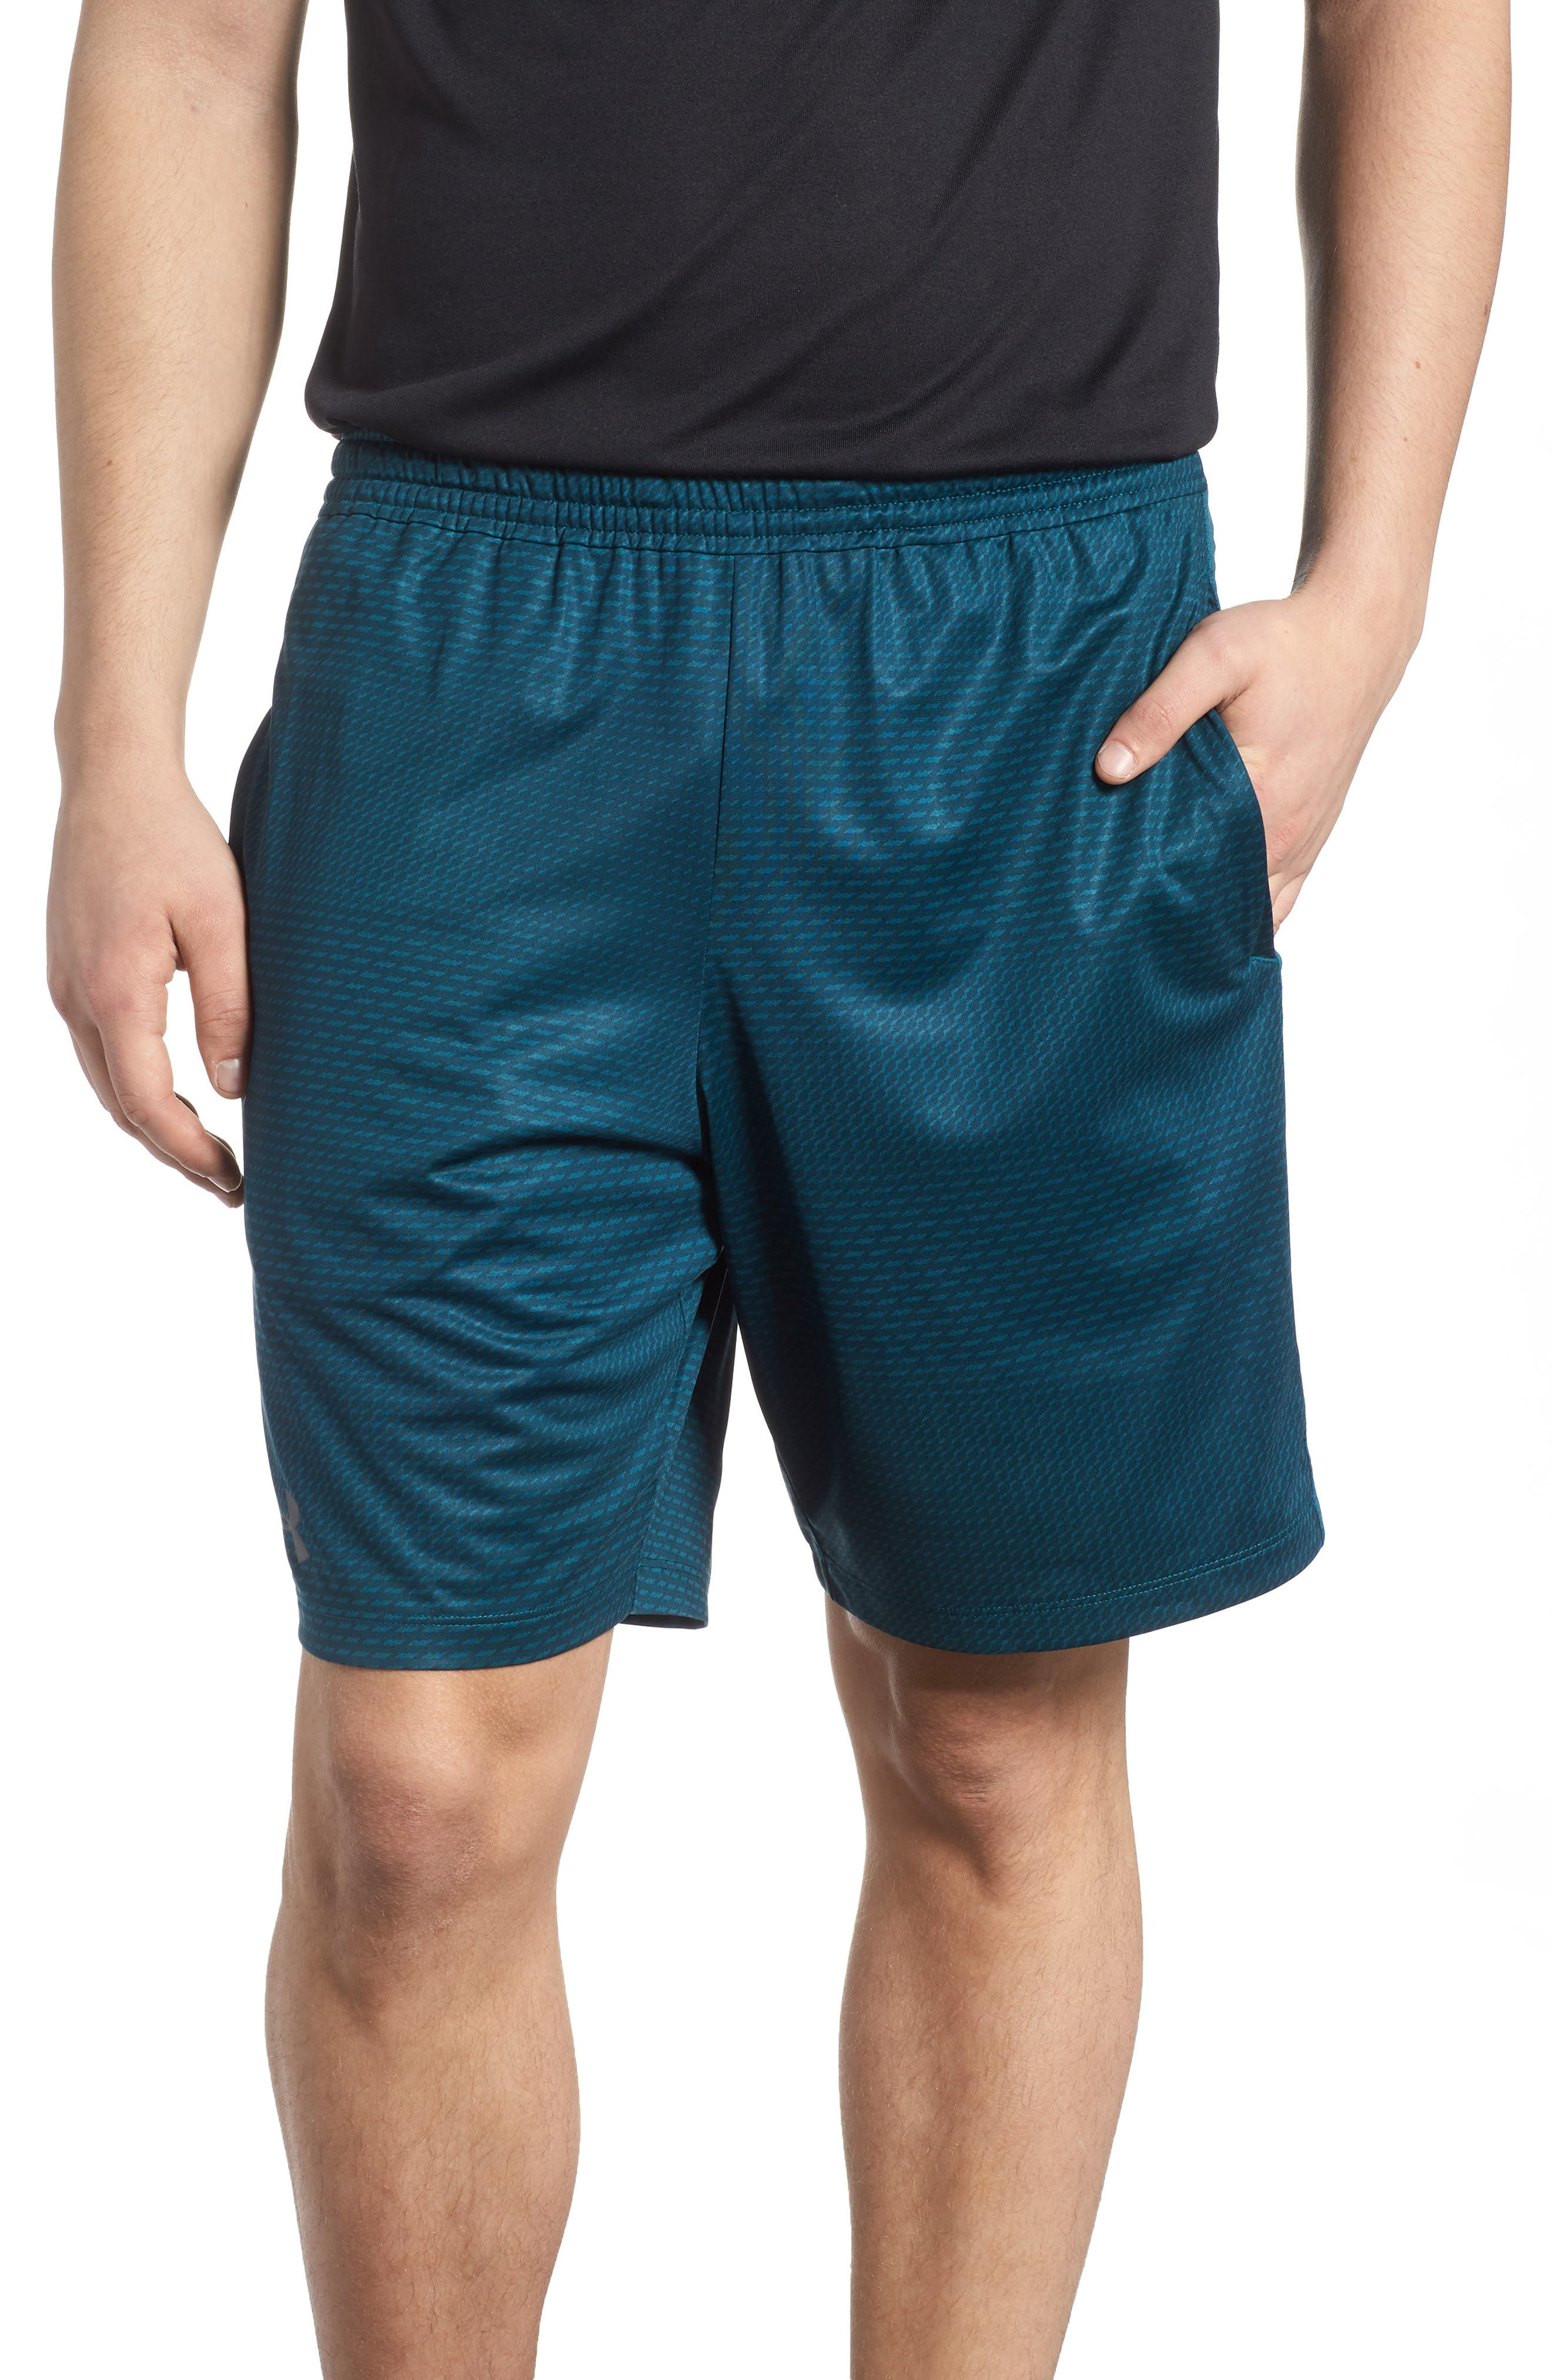 Raid 2.0 Classic Fit Shorts,                             Main thumbnail 1, color,                             Tourmaline Teal/ Stealth Gray